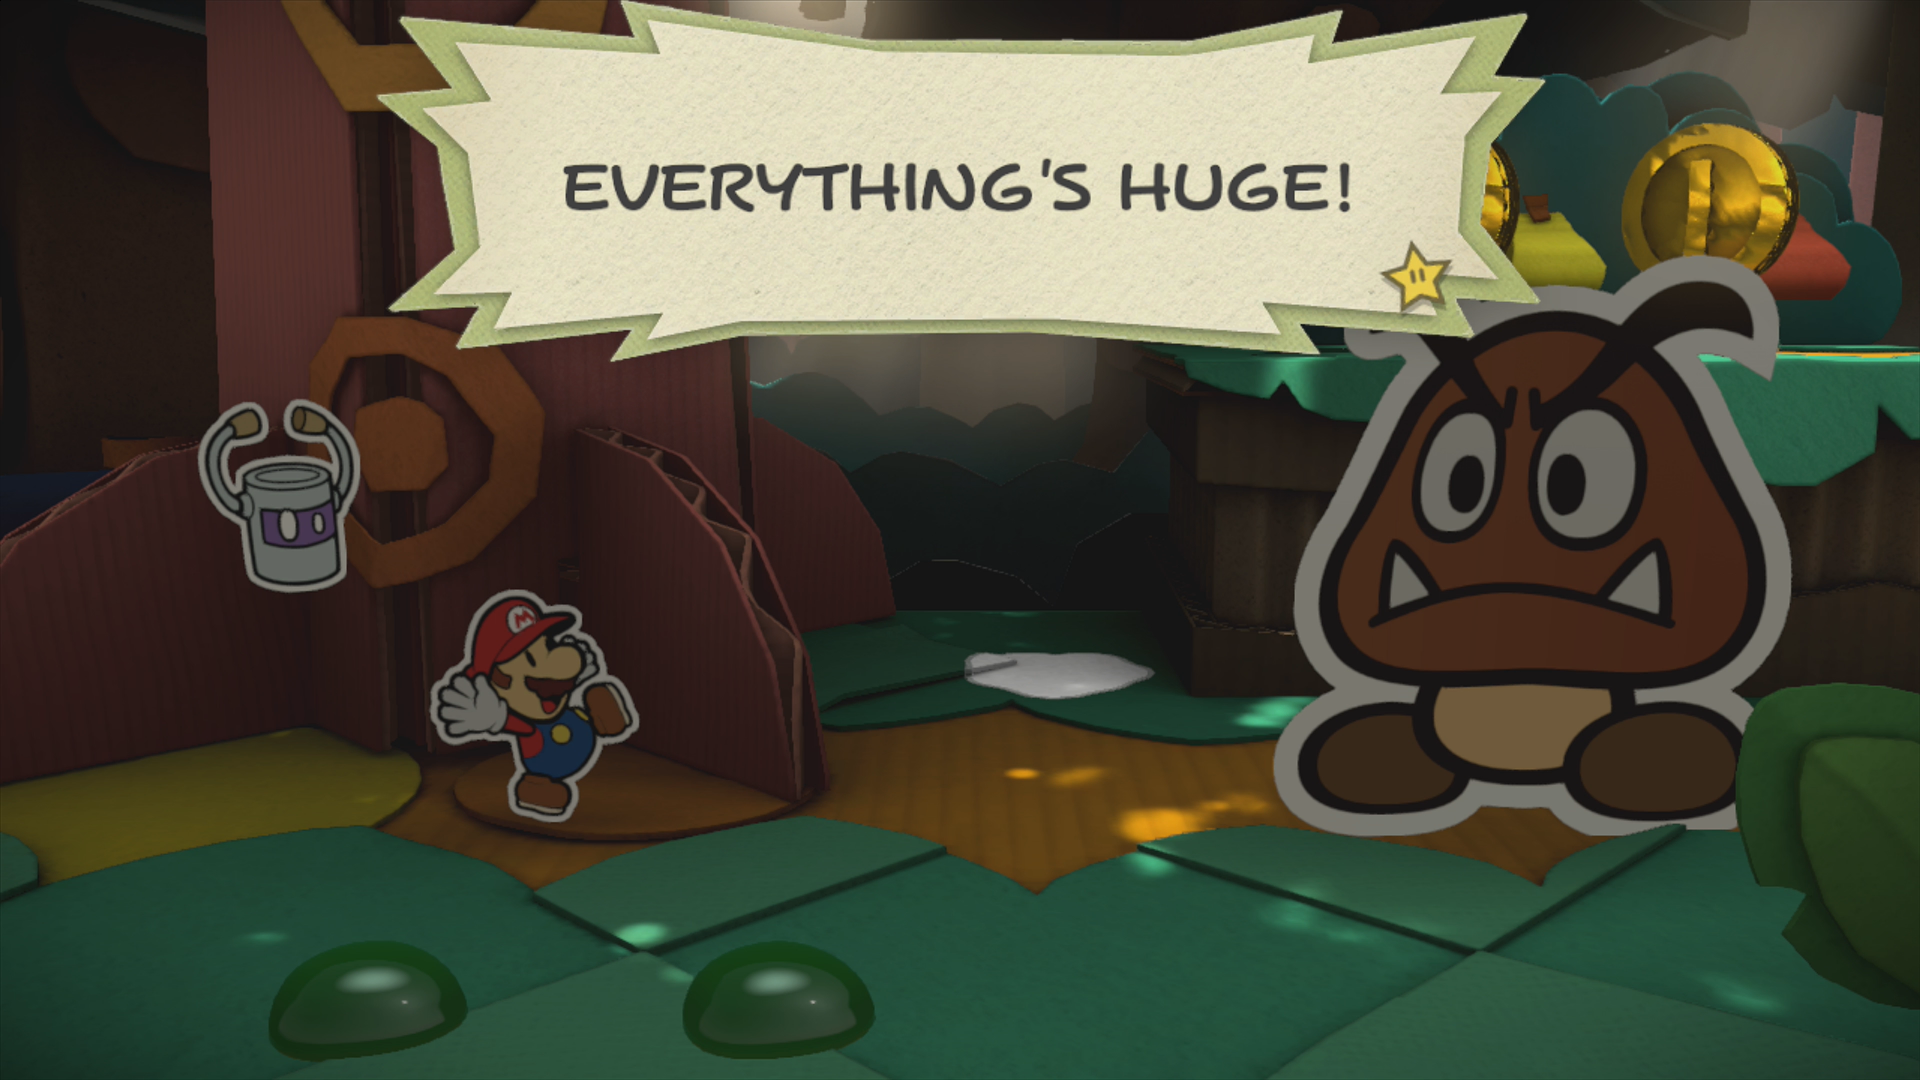 paper mario help How to defeat lava piranha in paper mario  it helps to use chill out   wikihow's mission is to help people learn, and we really hope this article helped  you.